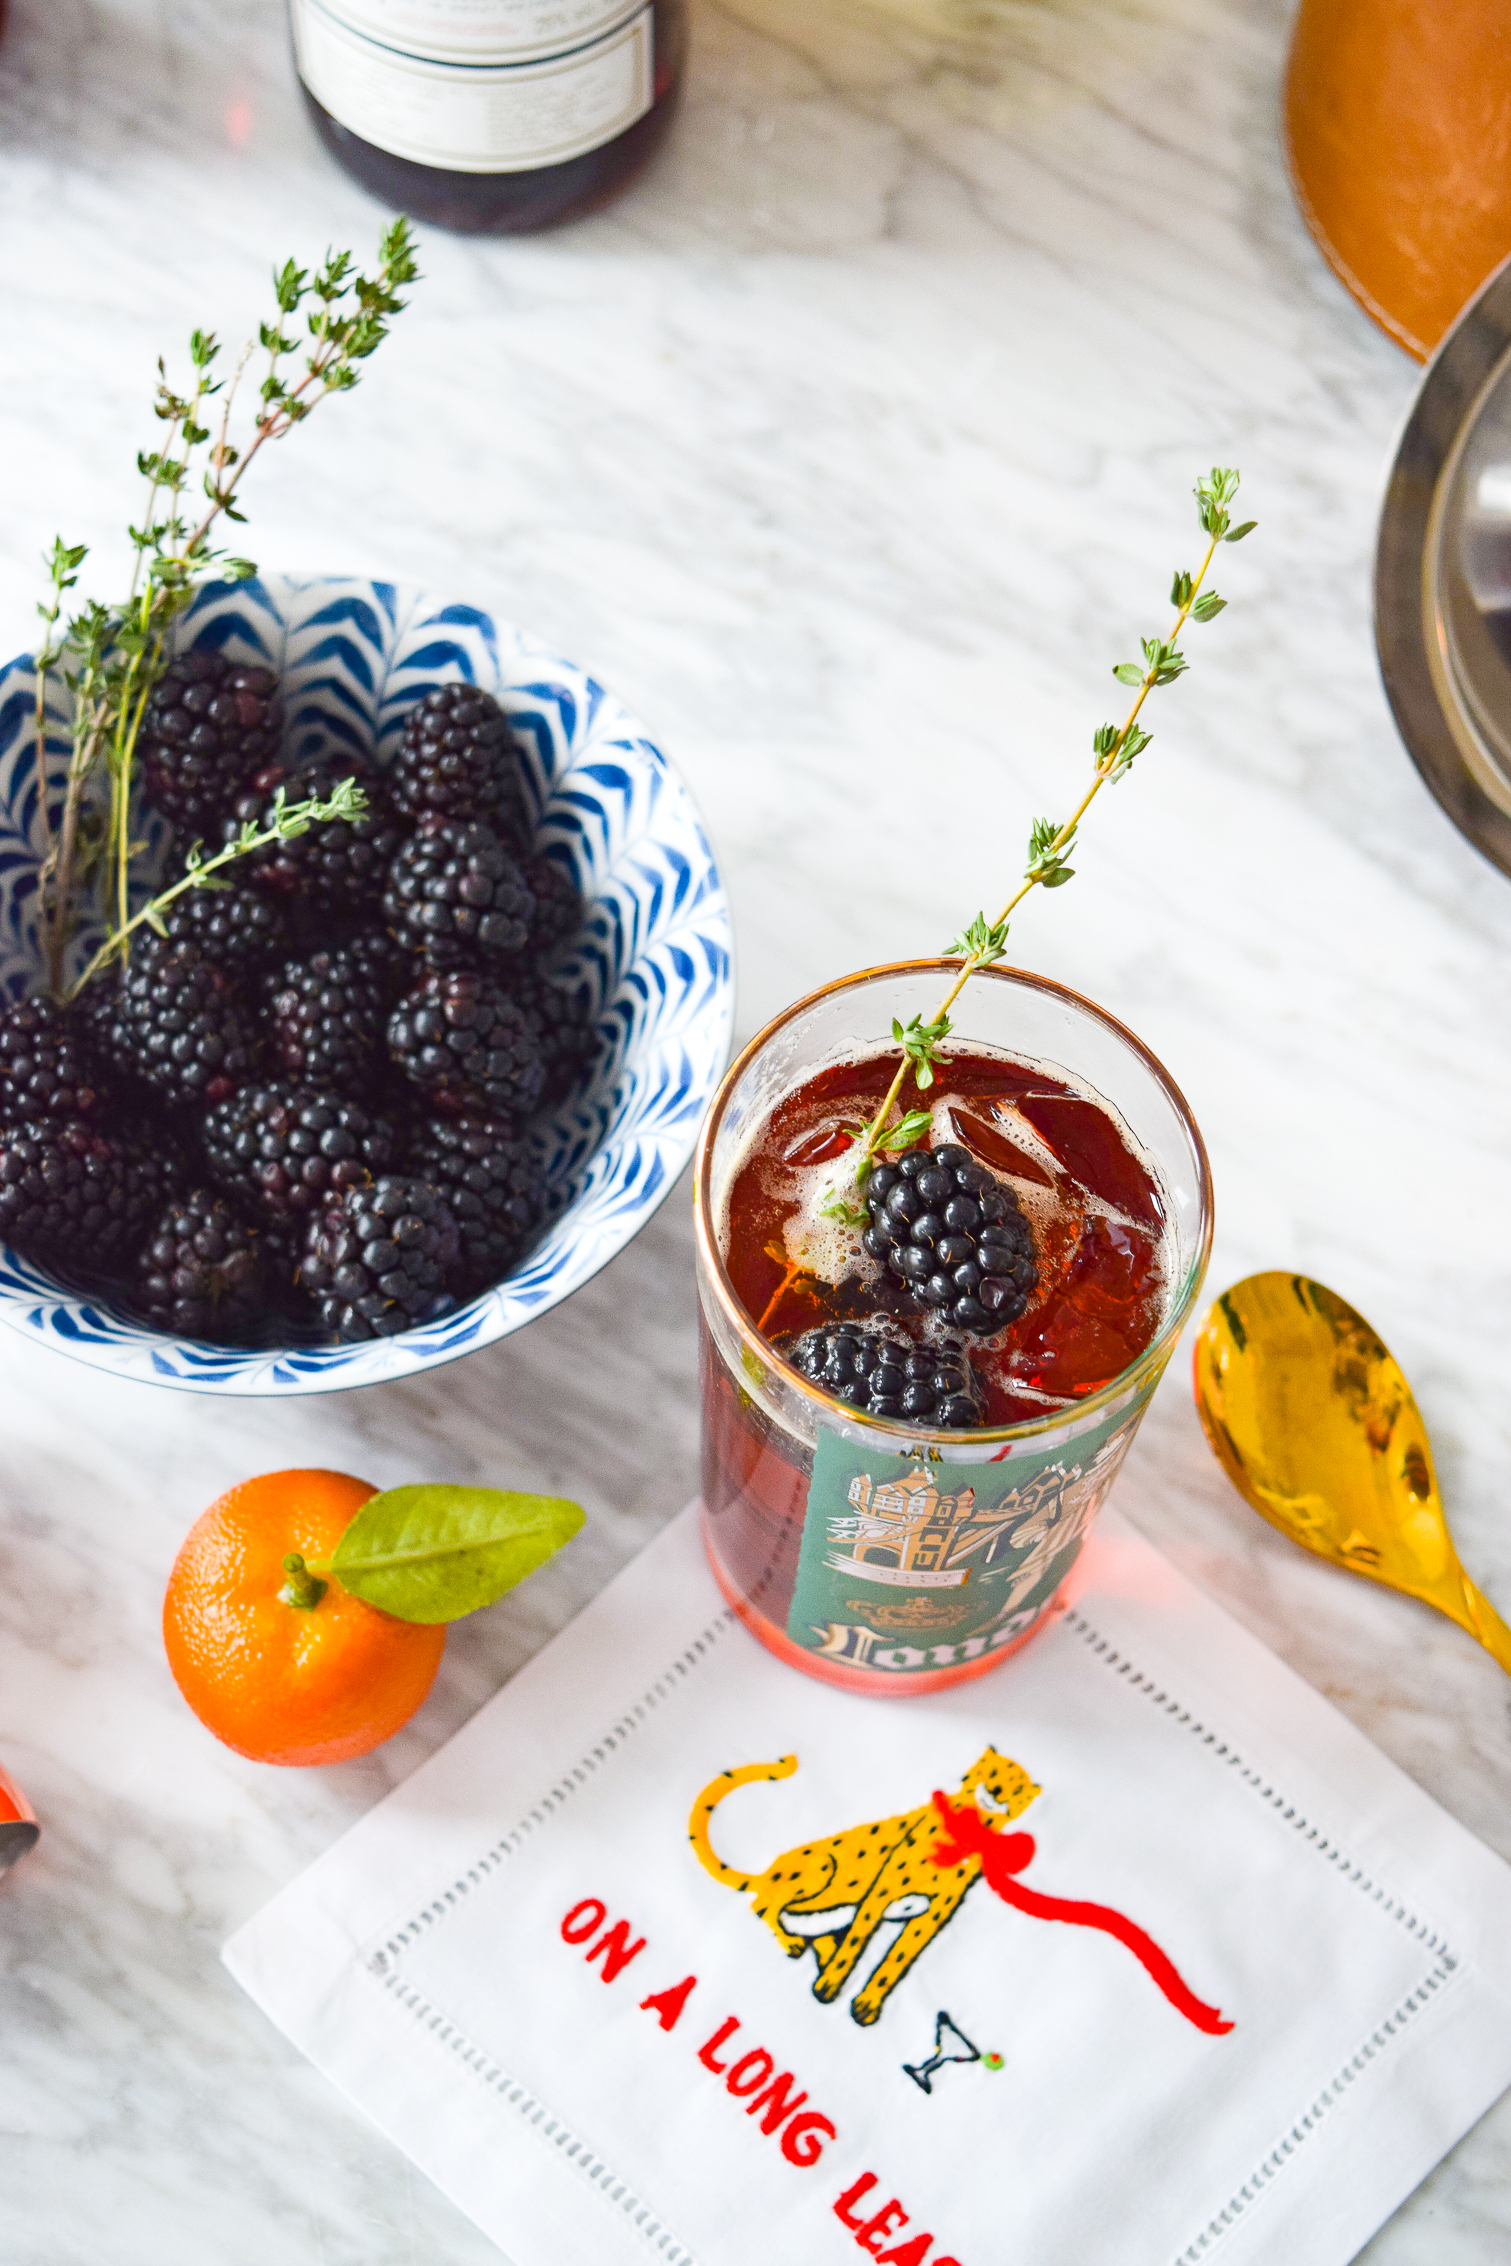 Make yourself a Blackberry & Rosemary Pimms Cup to start you happy hour in style! Their the perfect weekend sip or brunch cocktail. So fresh and tasty!